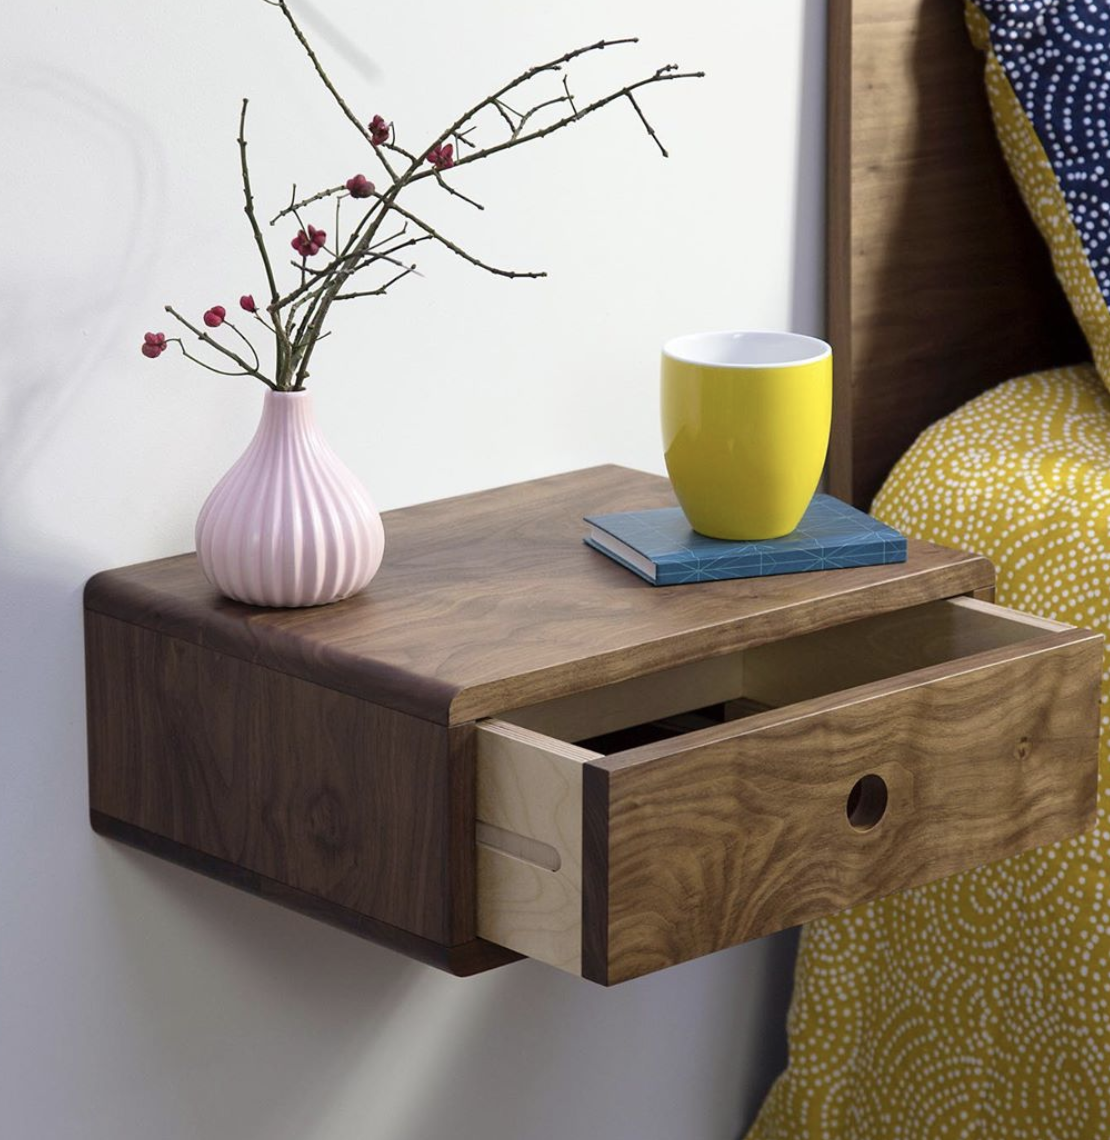 Every Minimalist Needs A Floating Nightstand These Bedside Tables Have No Legs